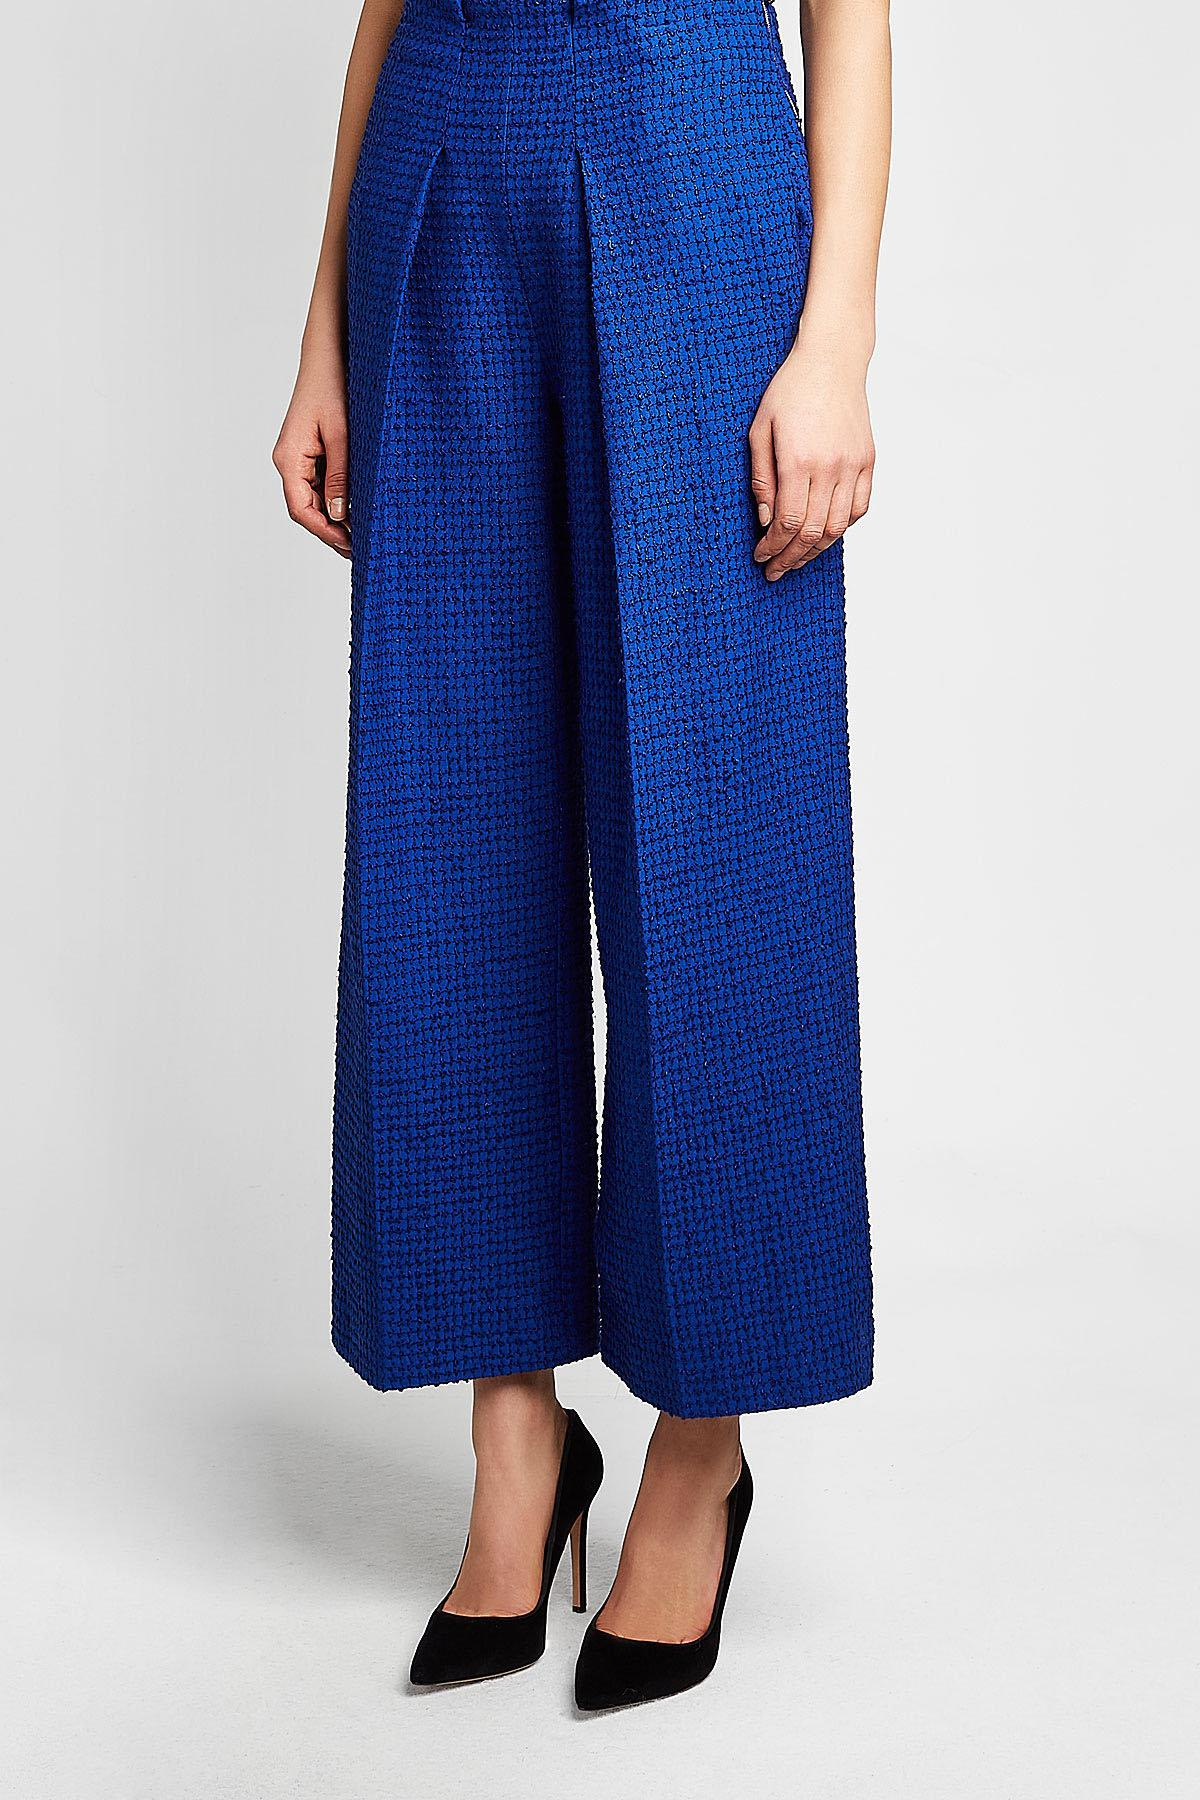 Quality From China Wholesale Perfect Cheap Online Meltham Stretch Boulcé Check Trousers Roland Mouret MS6JlnY